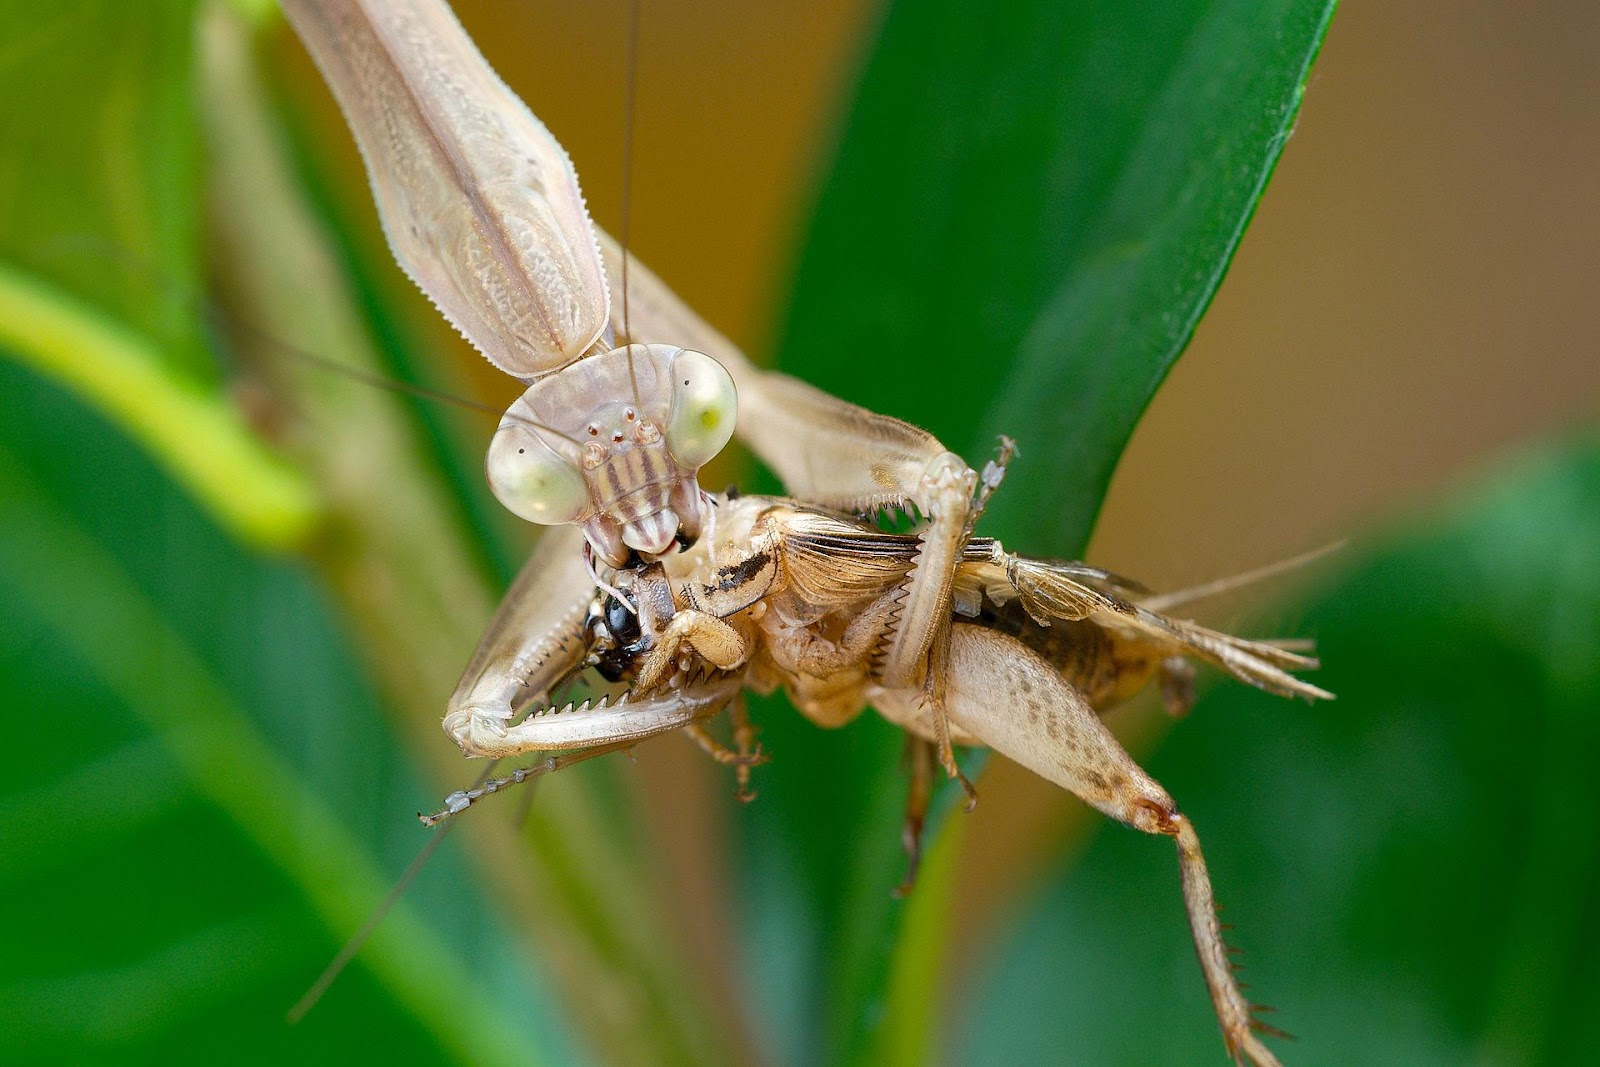 Mantis eating a cricket